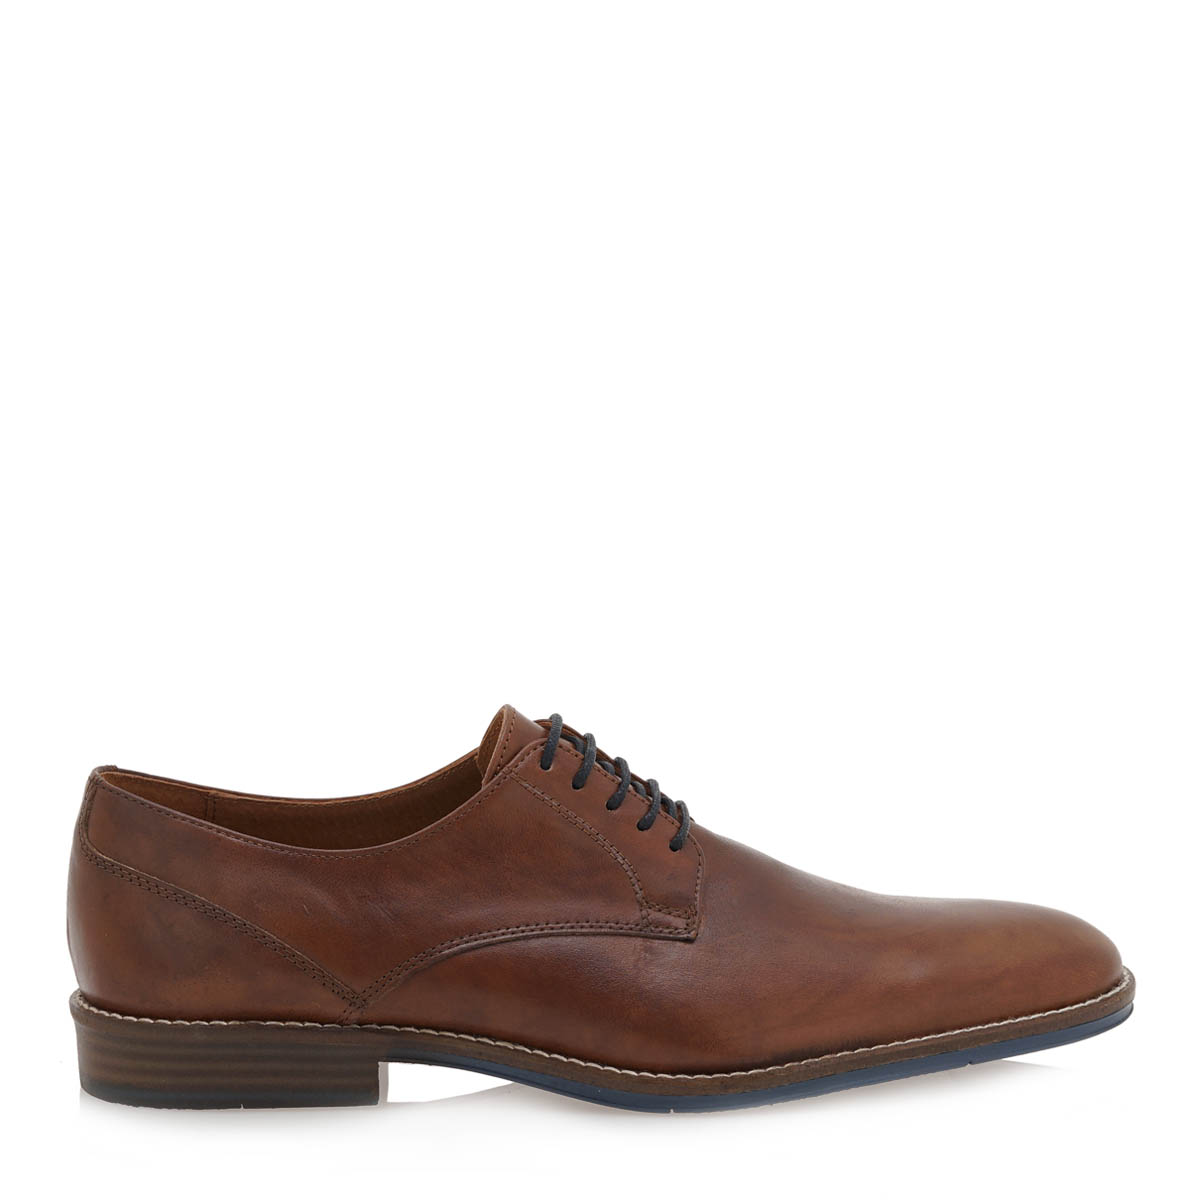 LACE-UP SHOES σχέδιο: I579V2141 outlet   ανδρικα   lace up shoes